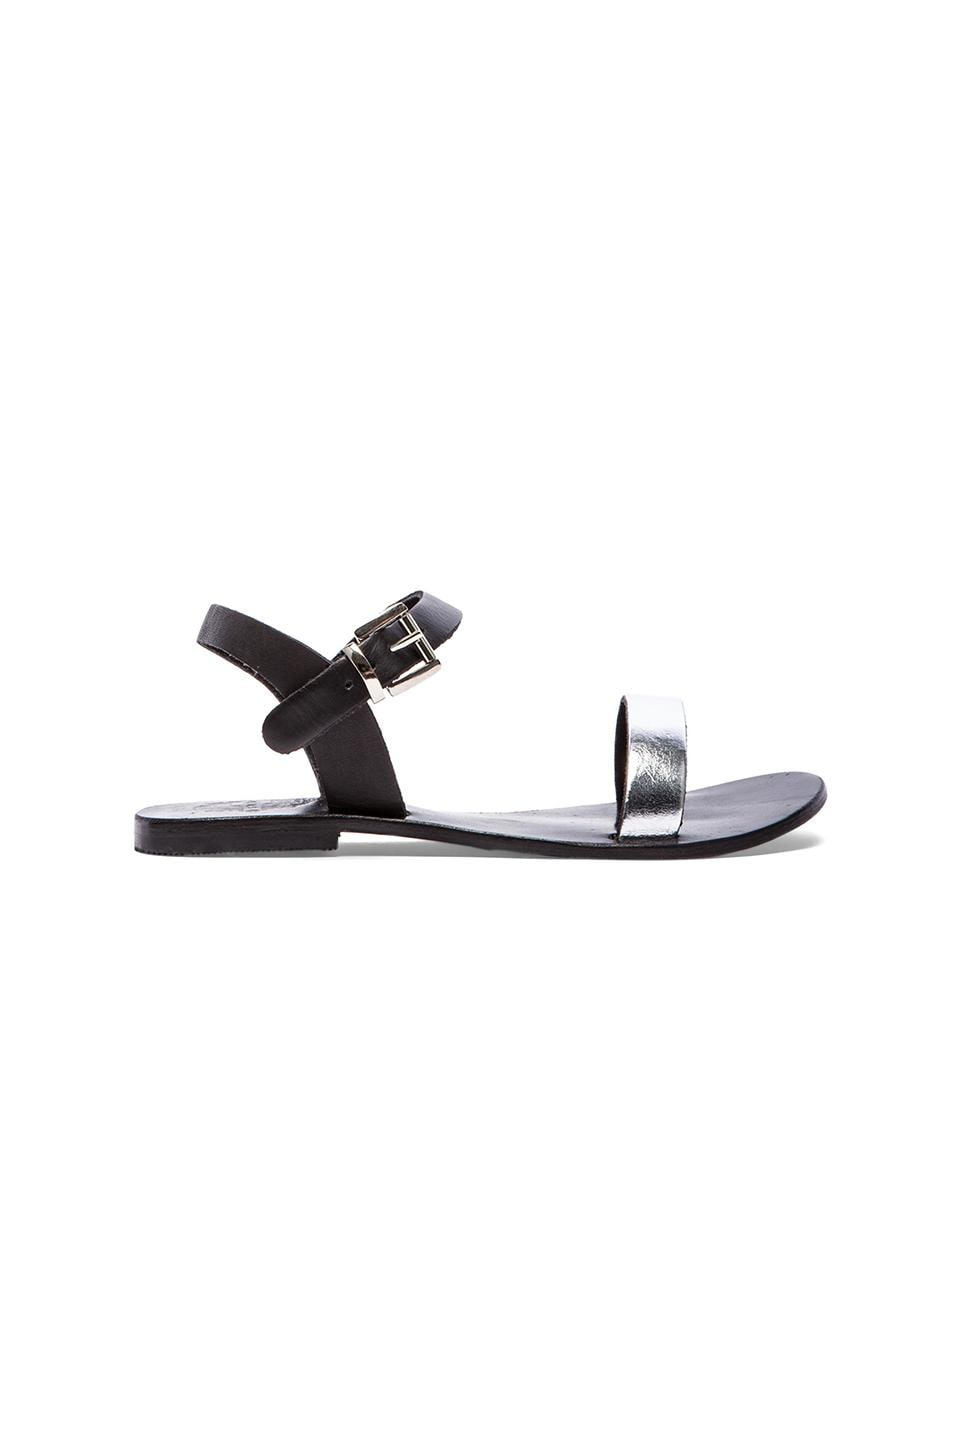 Sol Sana Rebel II Sandal in Black & Silver